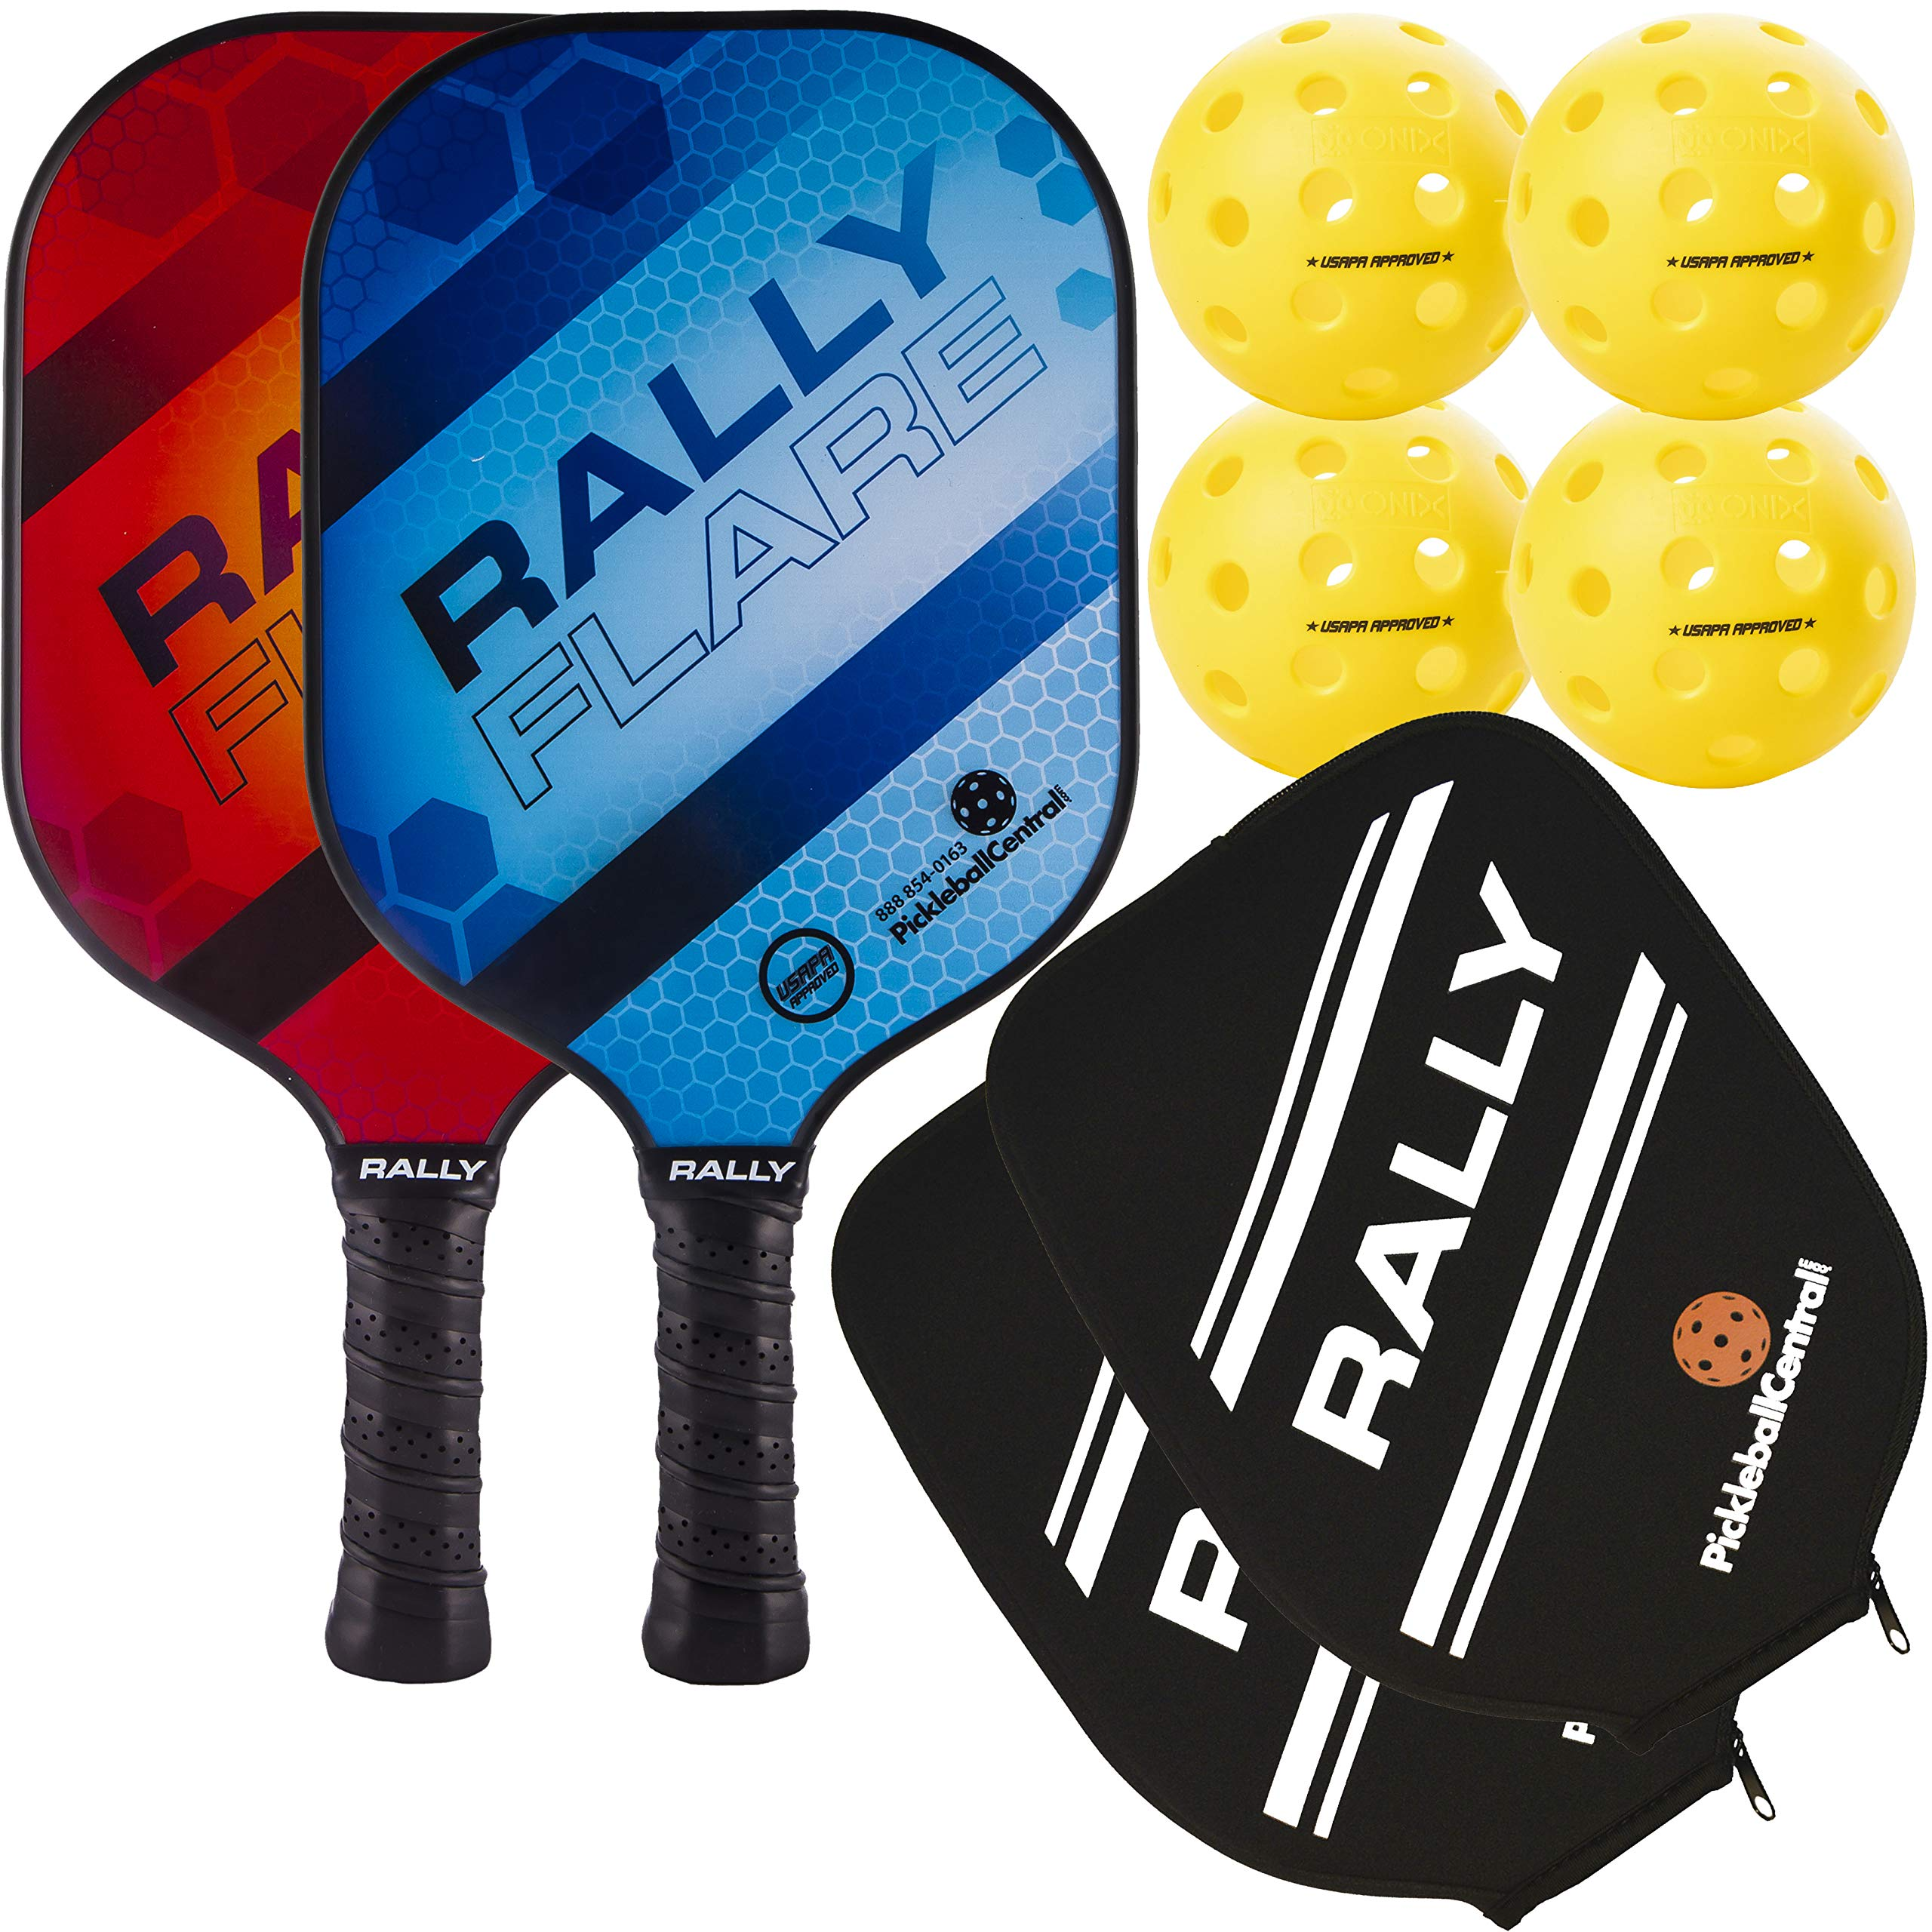 Rally Flare Graphite Pickleball Paddle | Polymer Honeycomb Core, Graphite Hybrid Composite Face | Lightweight | Paddle Cover Included (2-Pack Blue/Red)